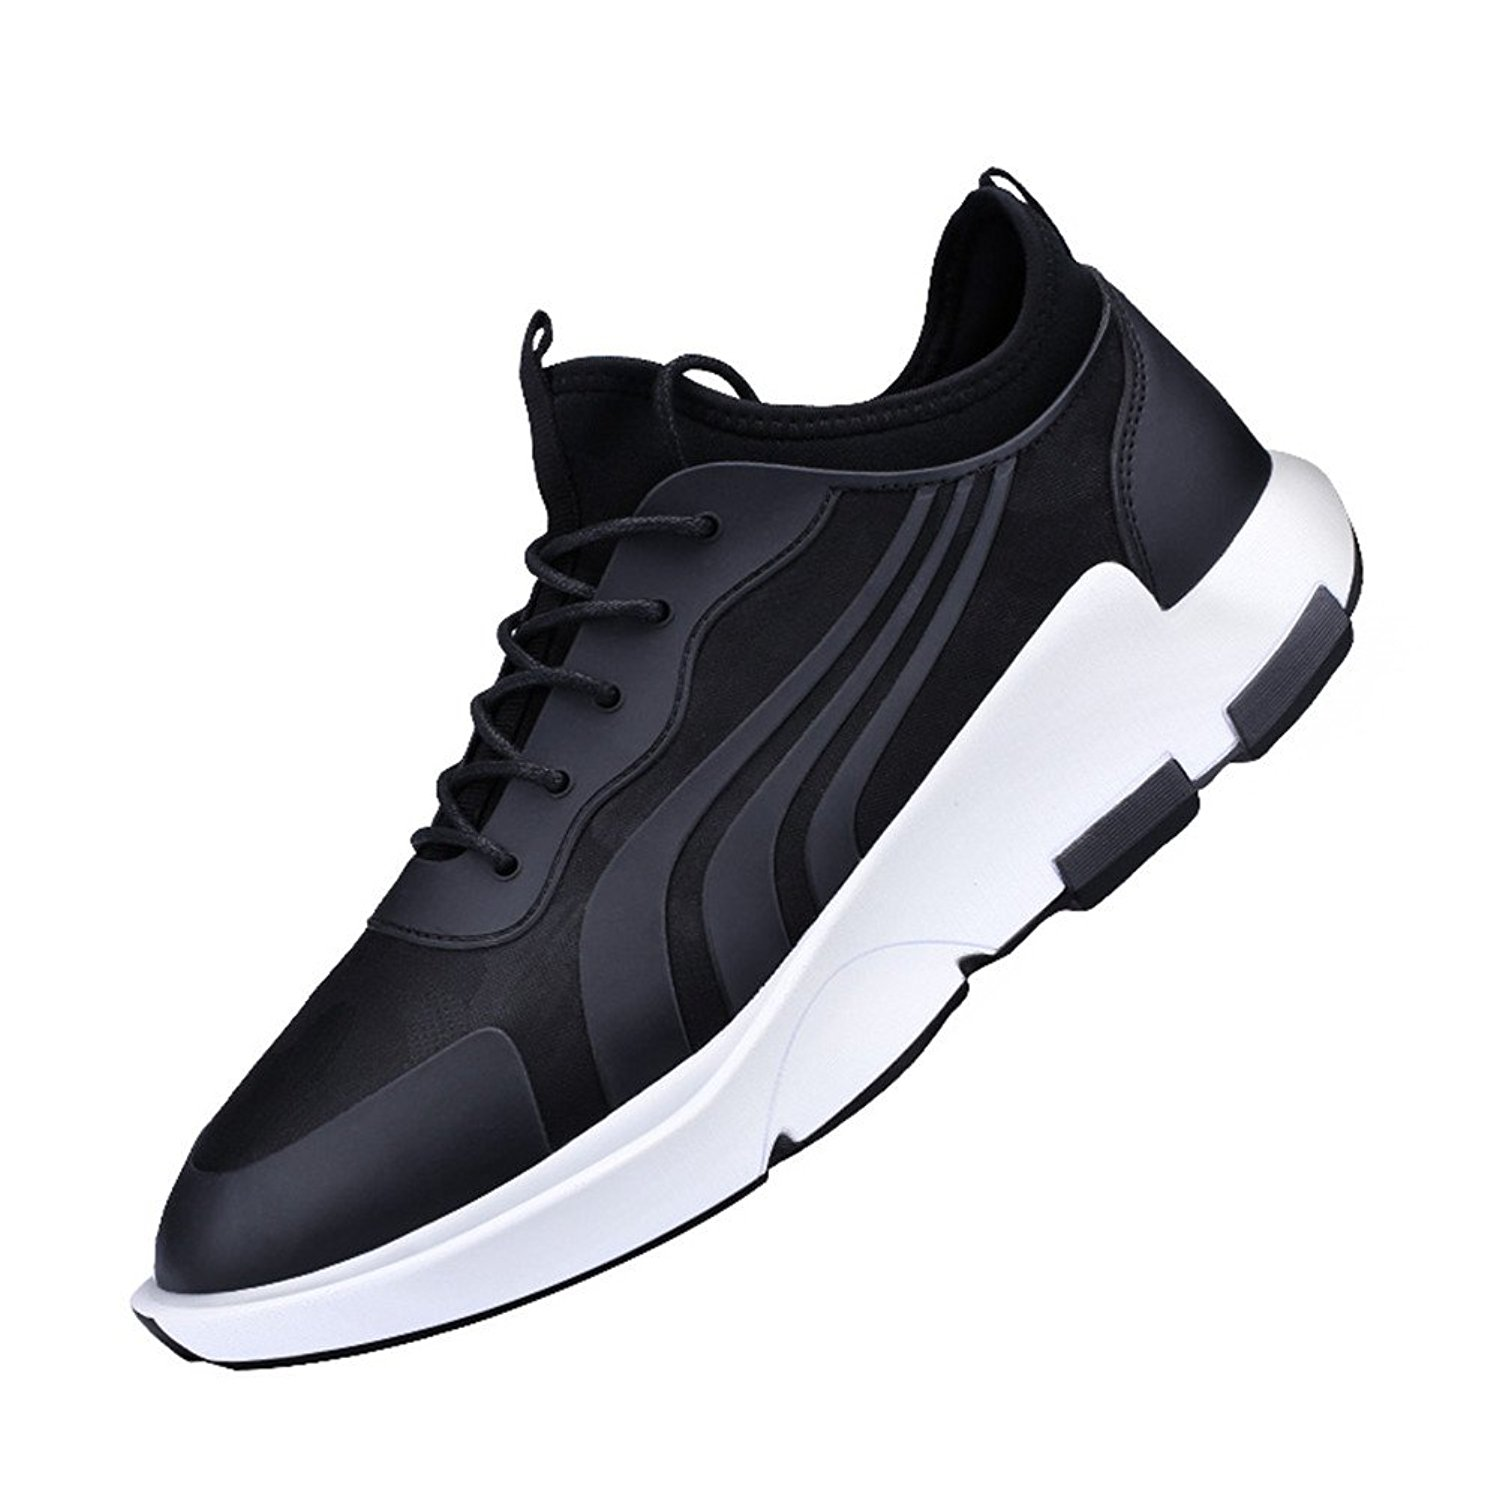 HAPPYSTORE Men Mesh Shoes Leisure Athletic Flat Running Non-Slip Light Sneakers